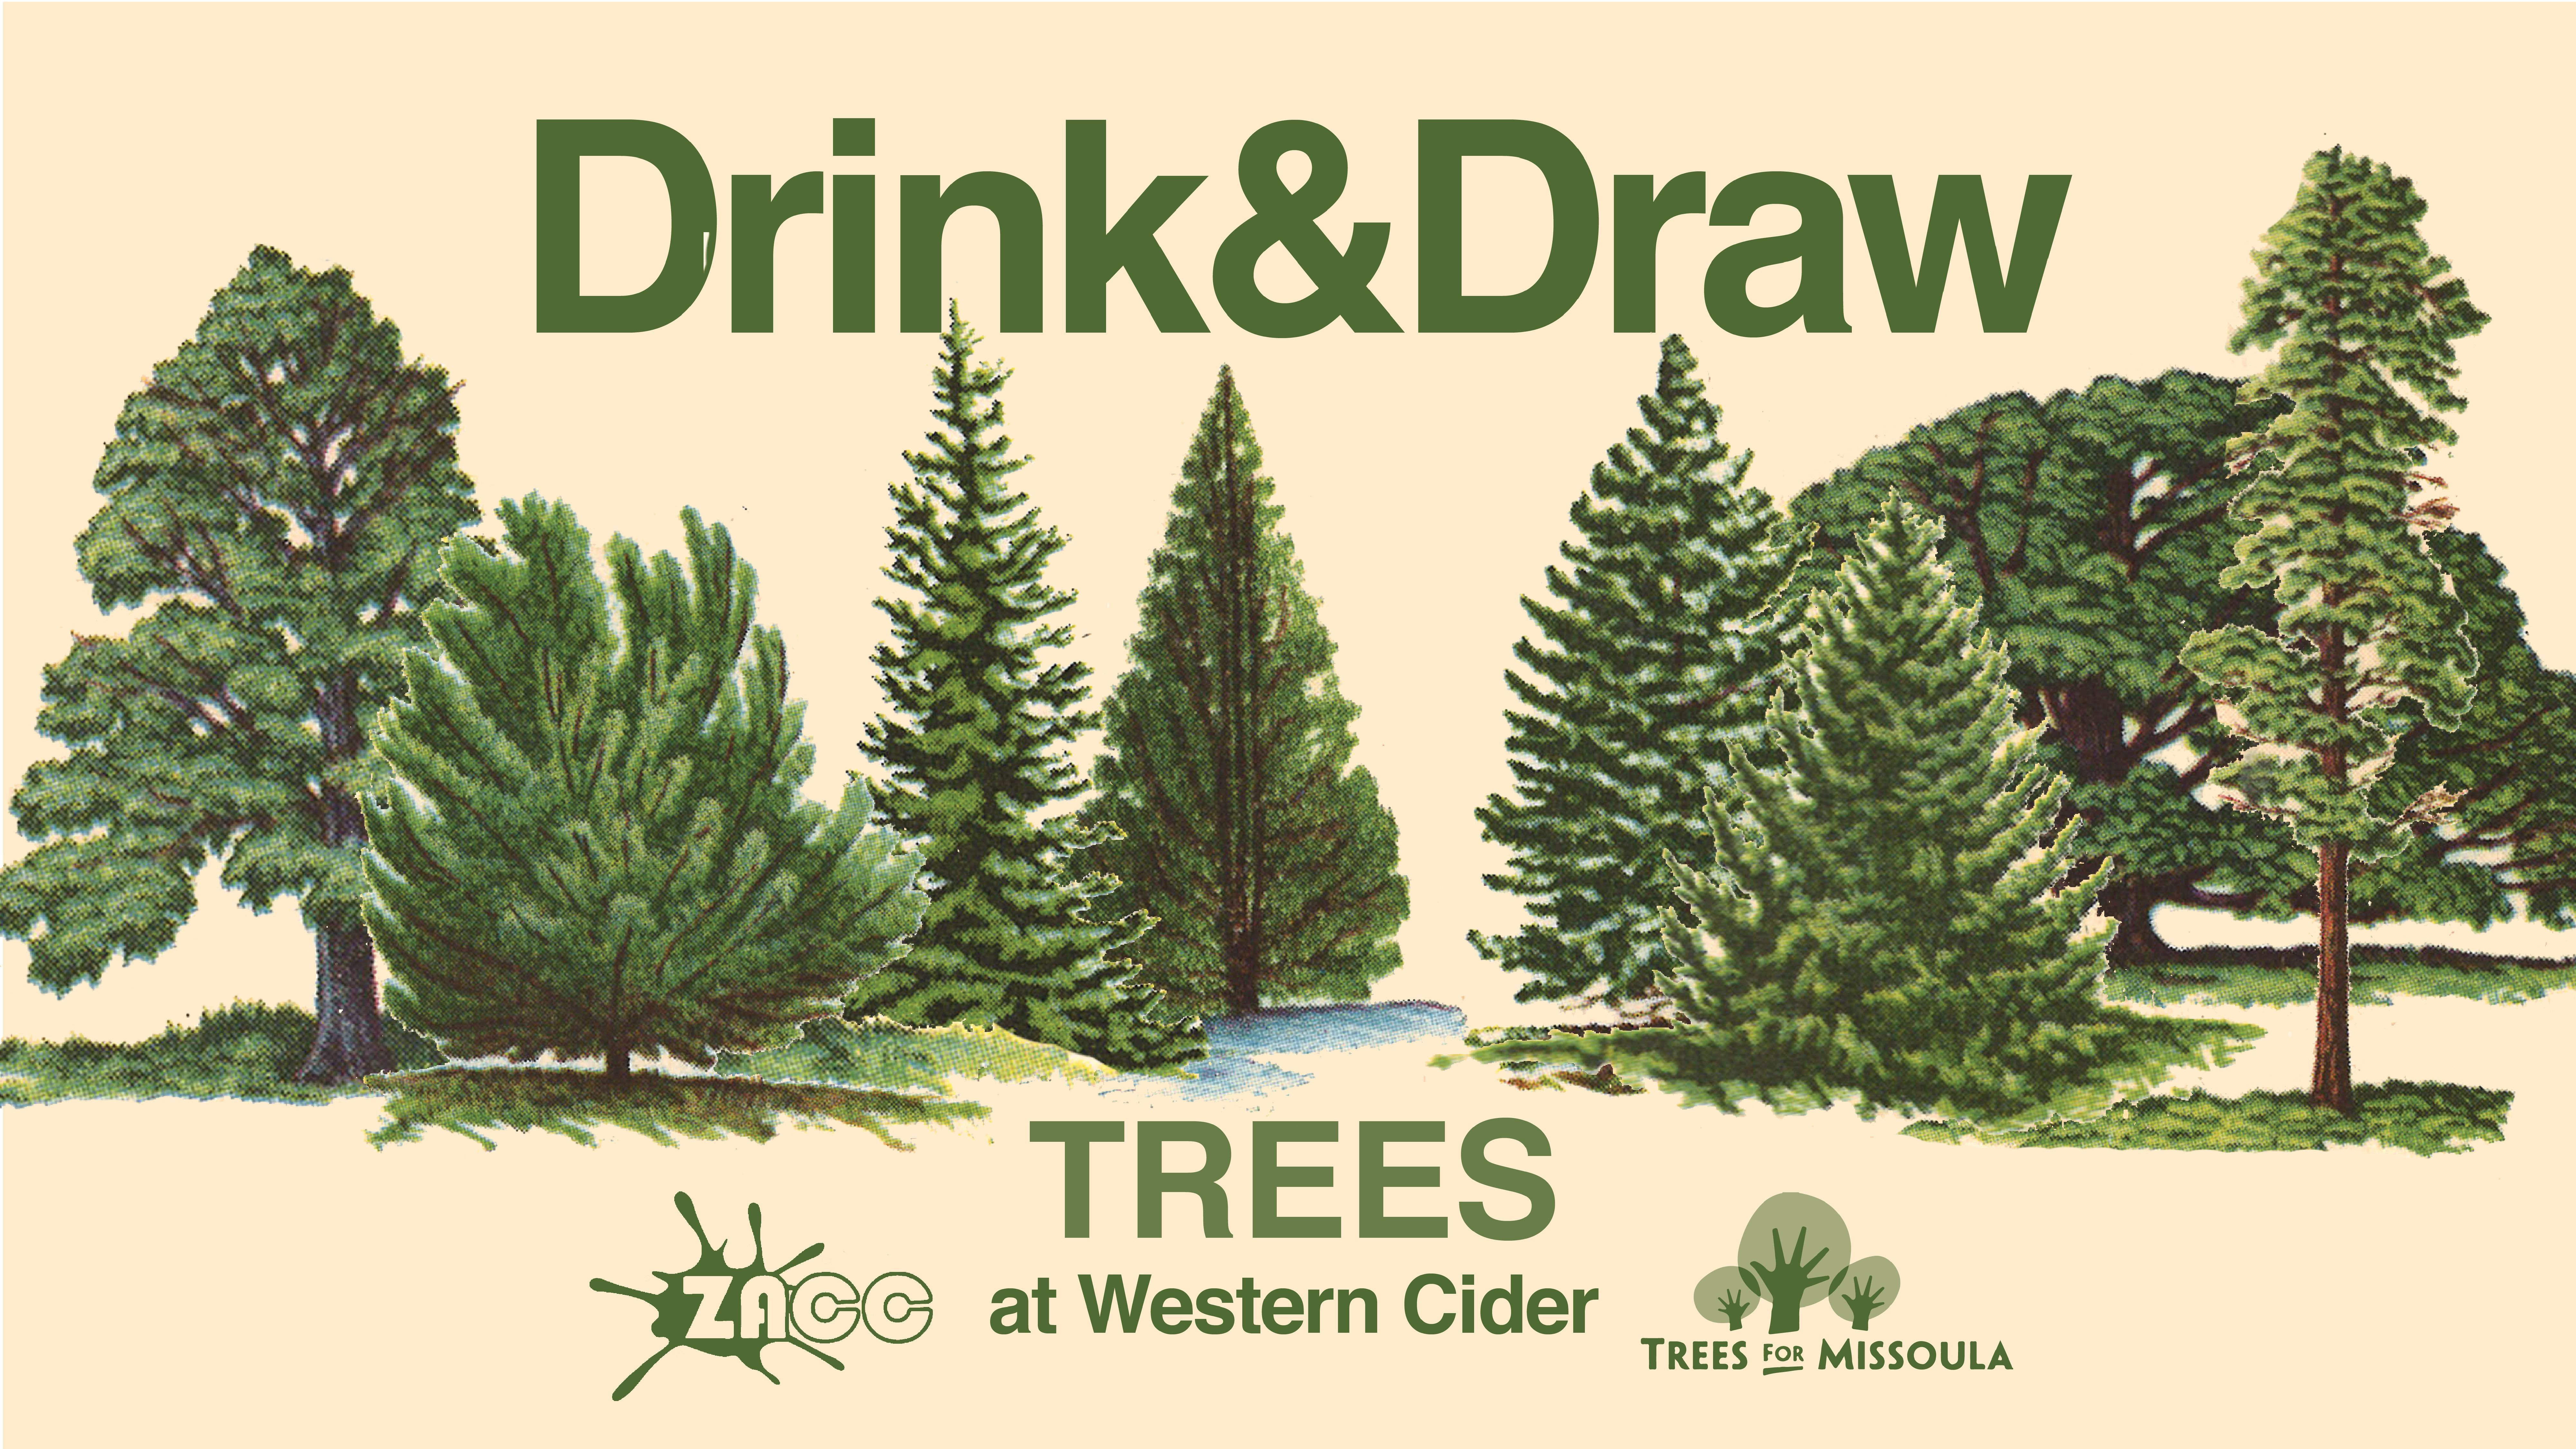 Drink & Draw Trees with Trees for Missoula